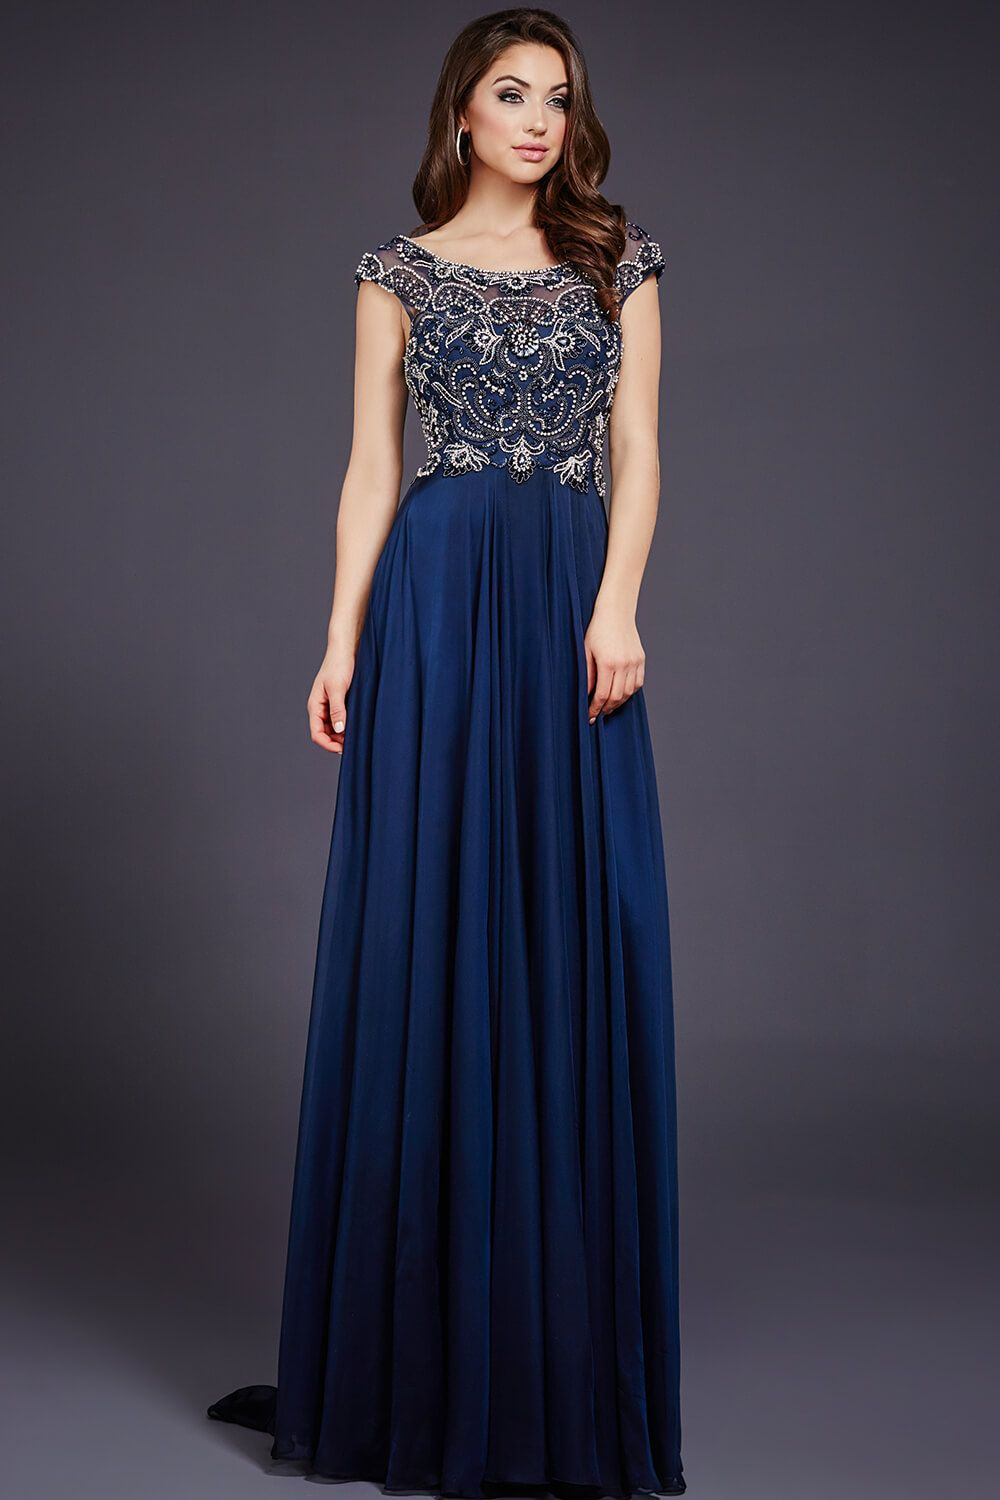 The dress empire - The Crystal Embellished Bodice On Jovani 29344 Perfectly Compliments The Flowing Chiffon Skirt